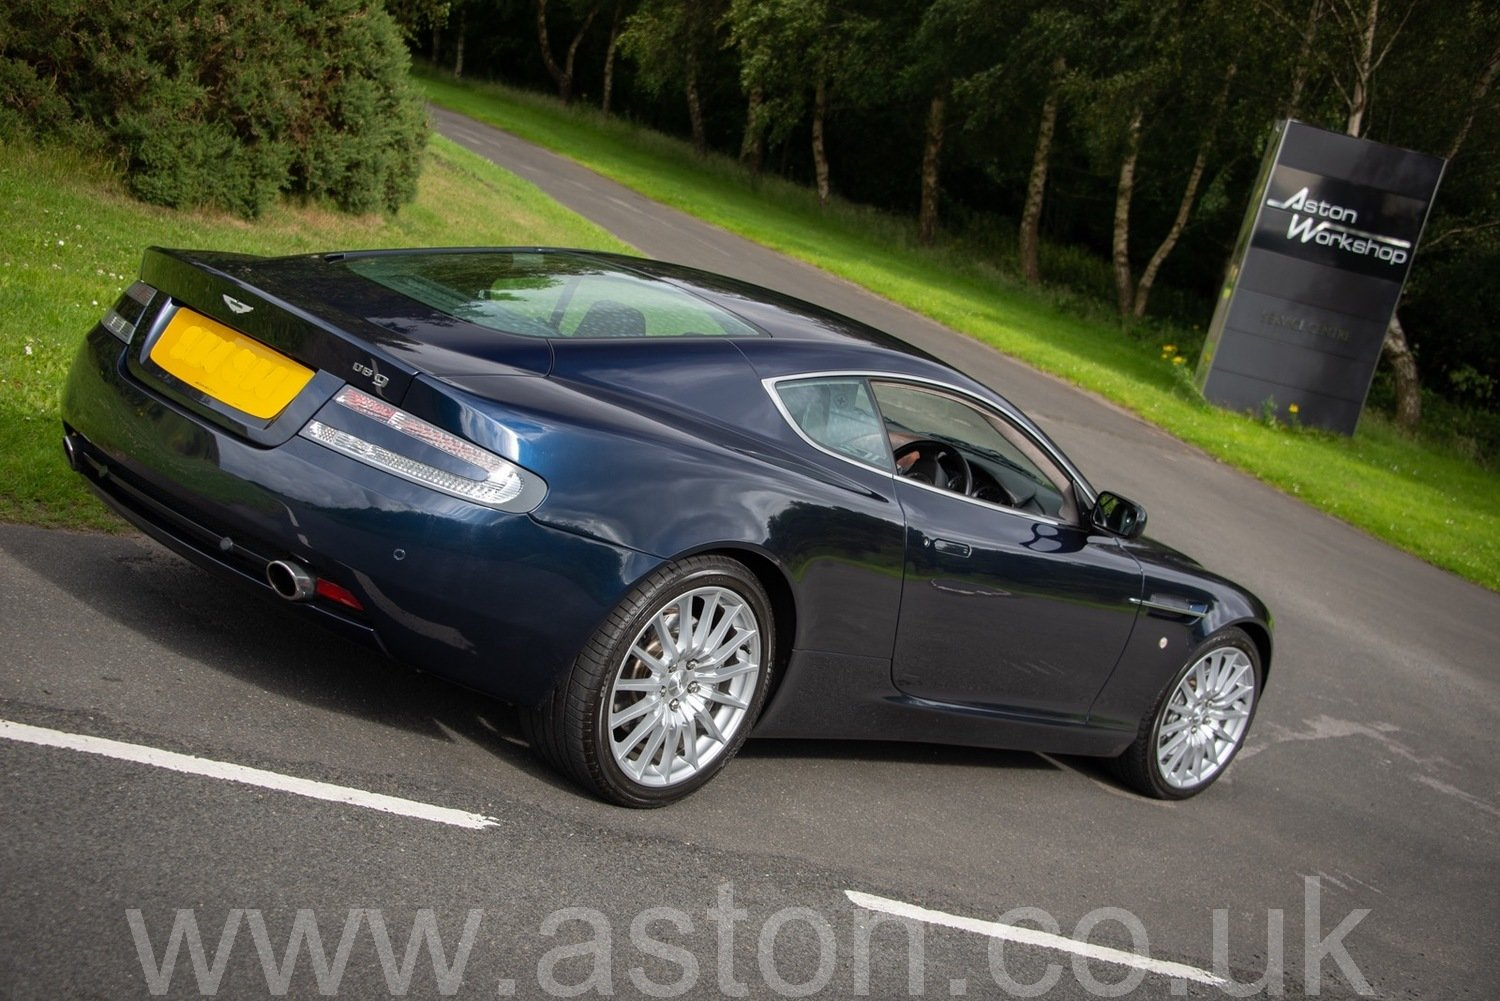 2005 Aston Martin DB9 Coupe  For Sale (picture 5 of 6)